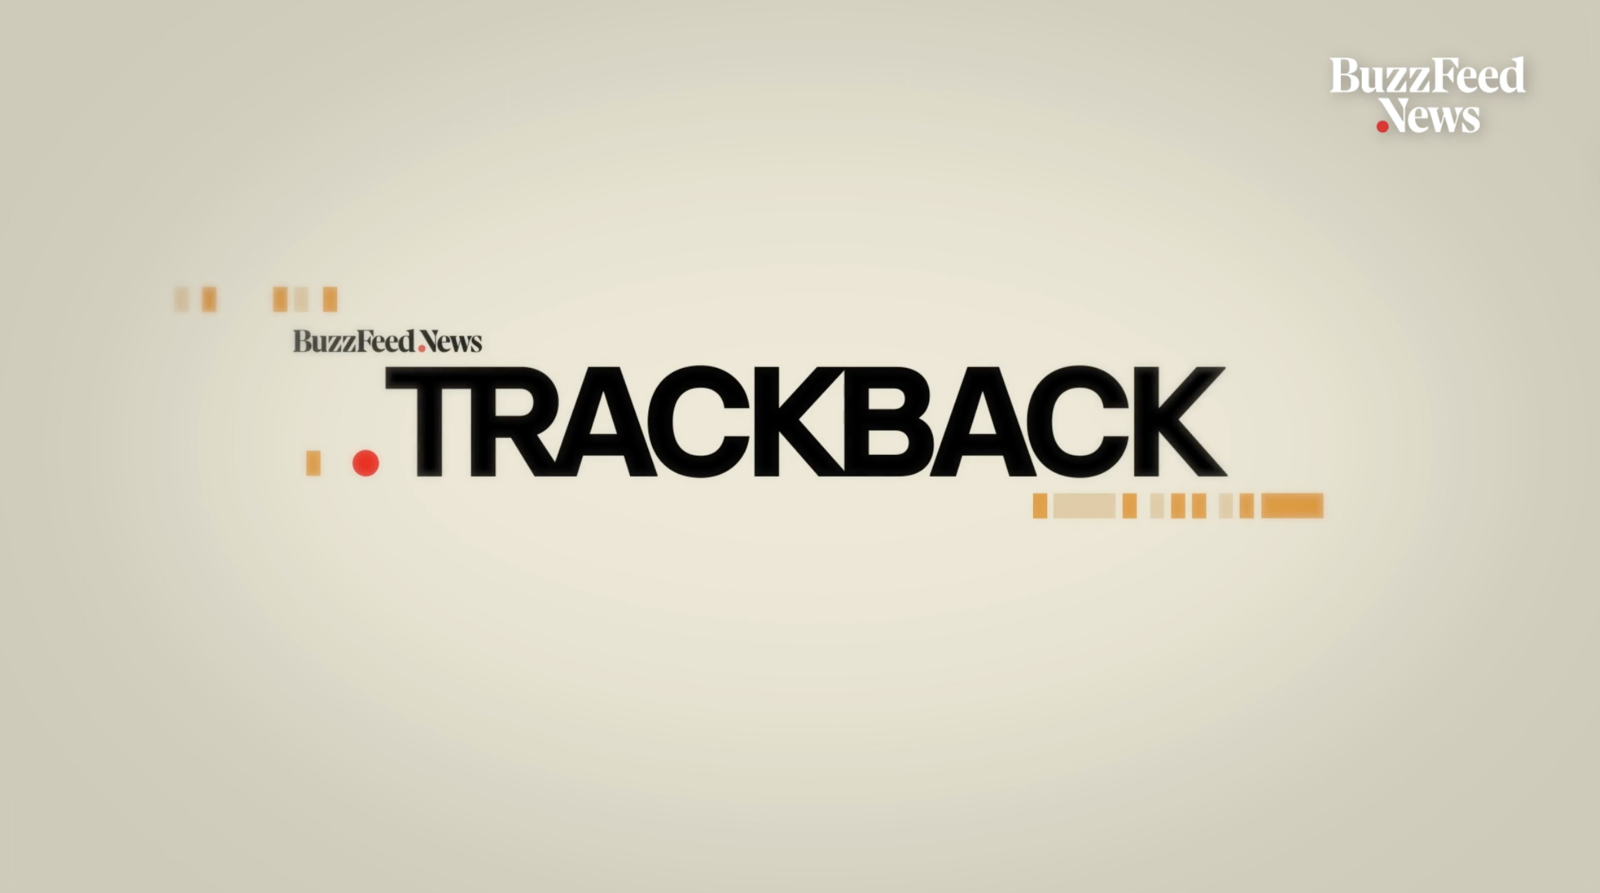 Trackback Is A New Hoax-Busting YouTube Series From BuzzFeed News